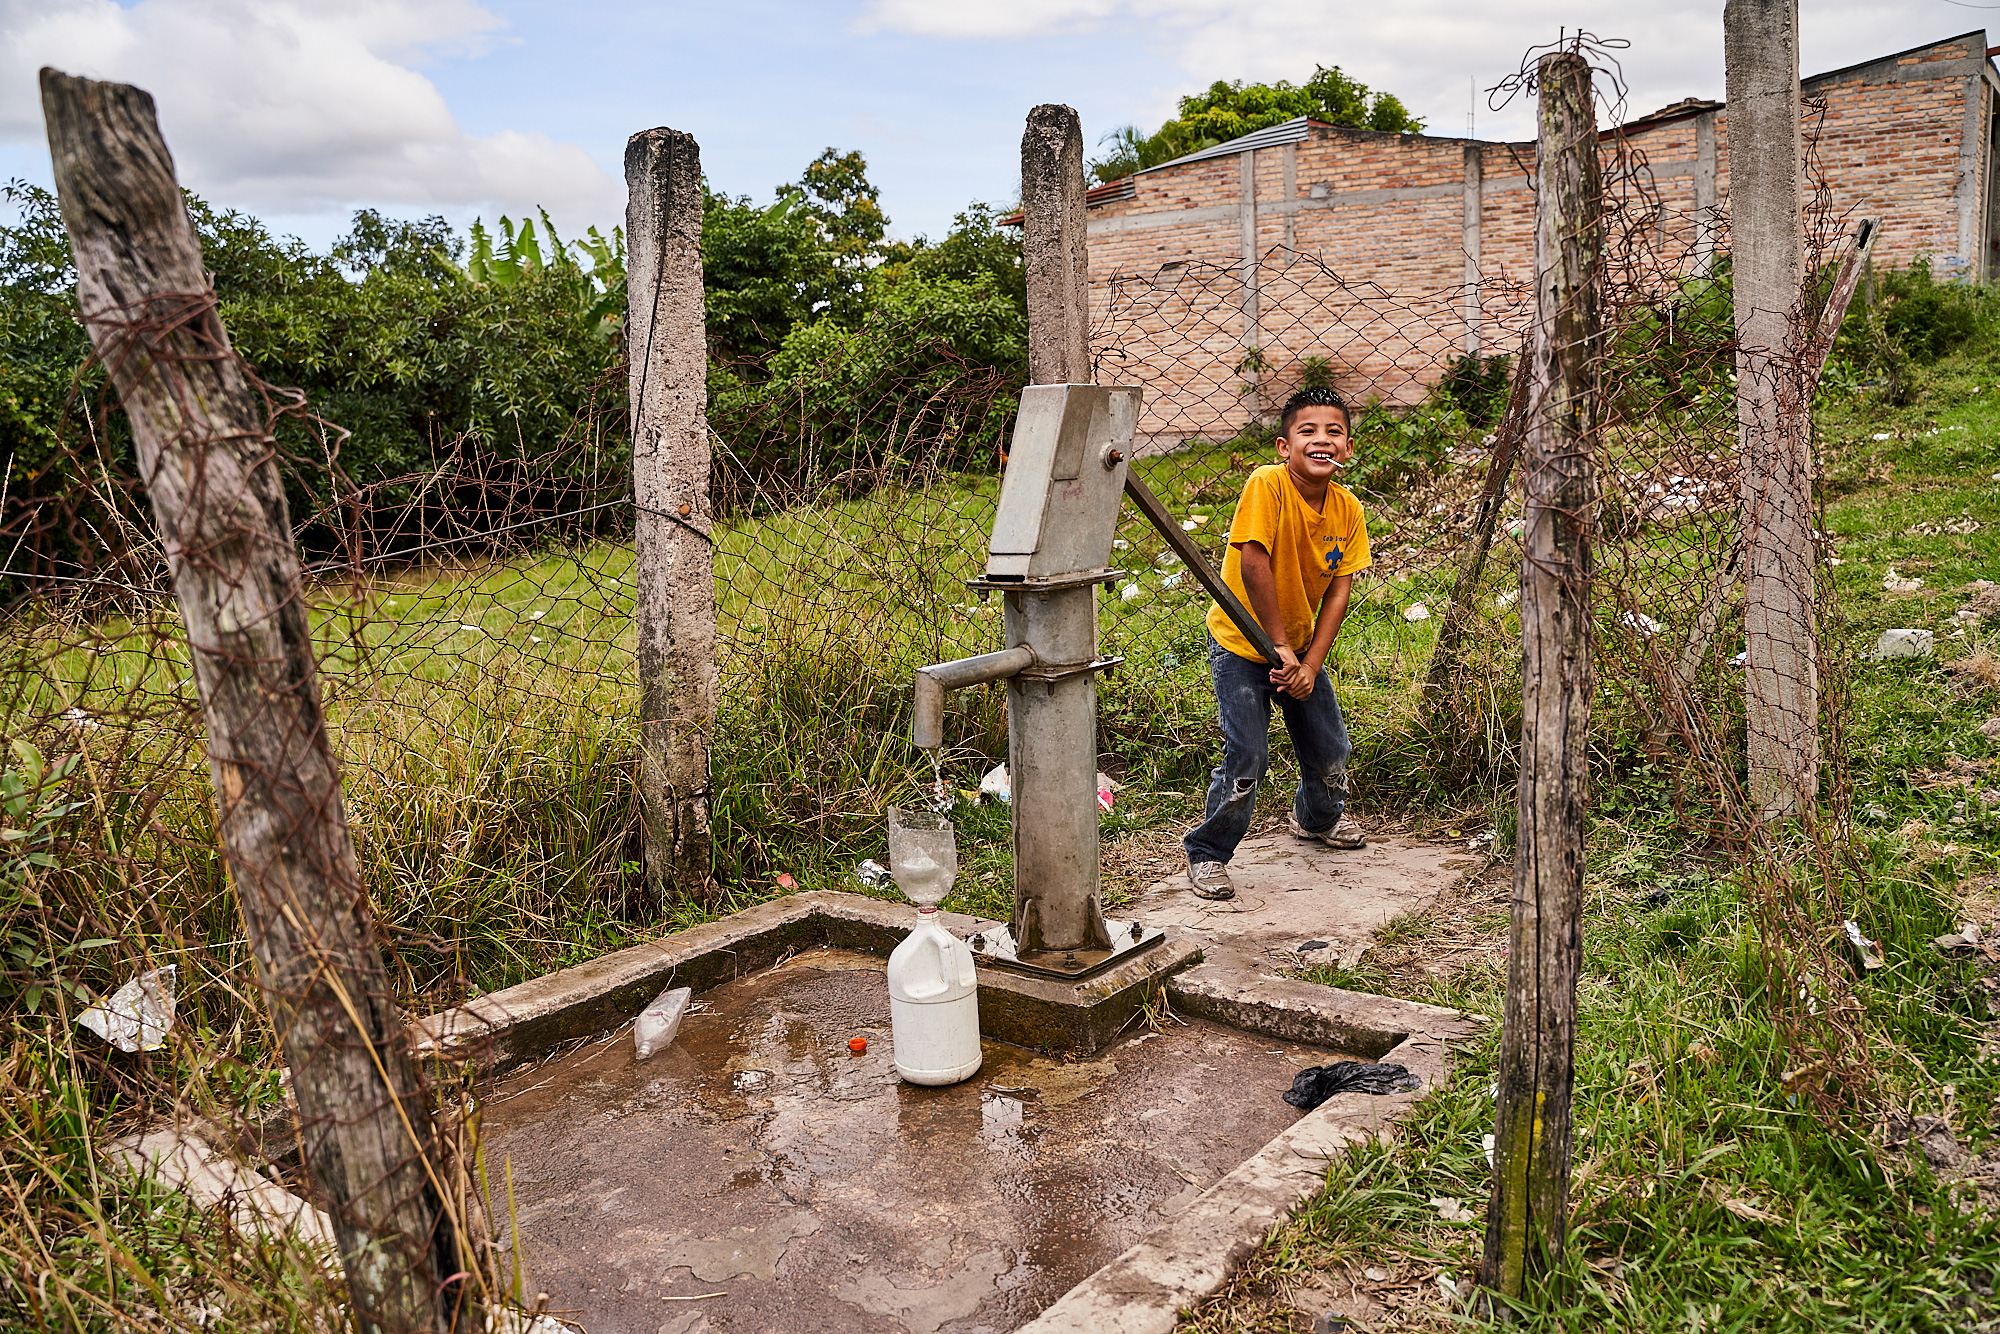 A boy pumps water at a well in Honduras.